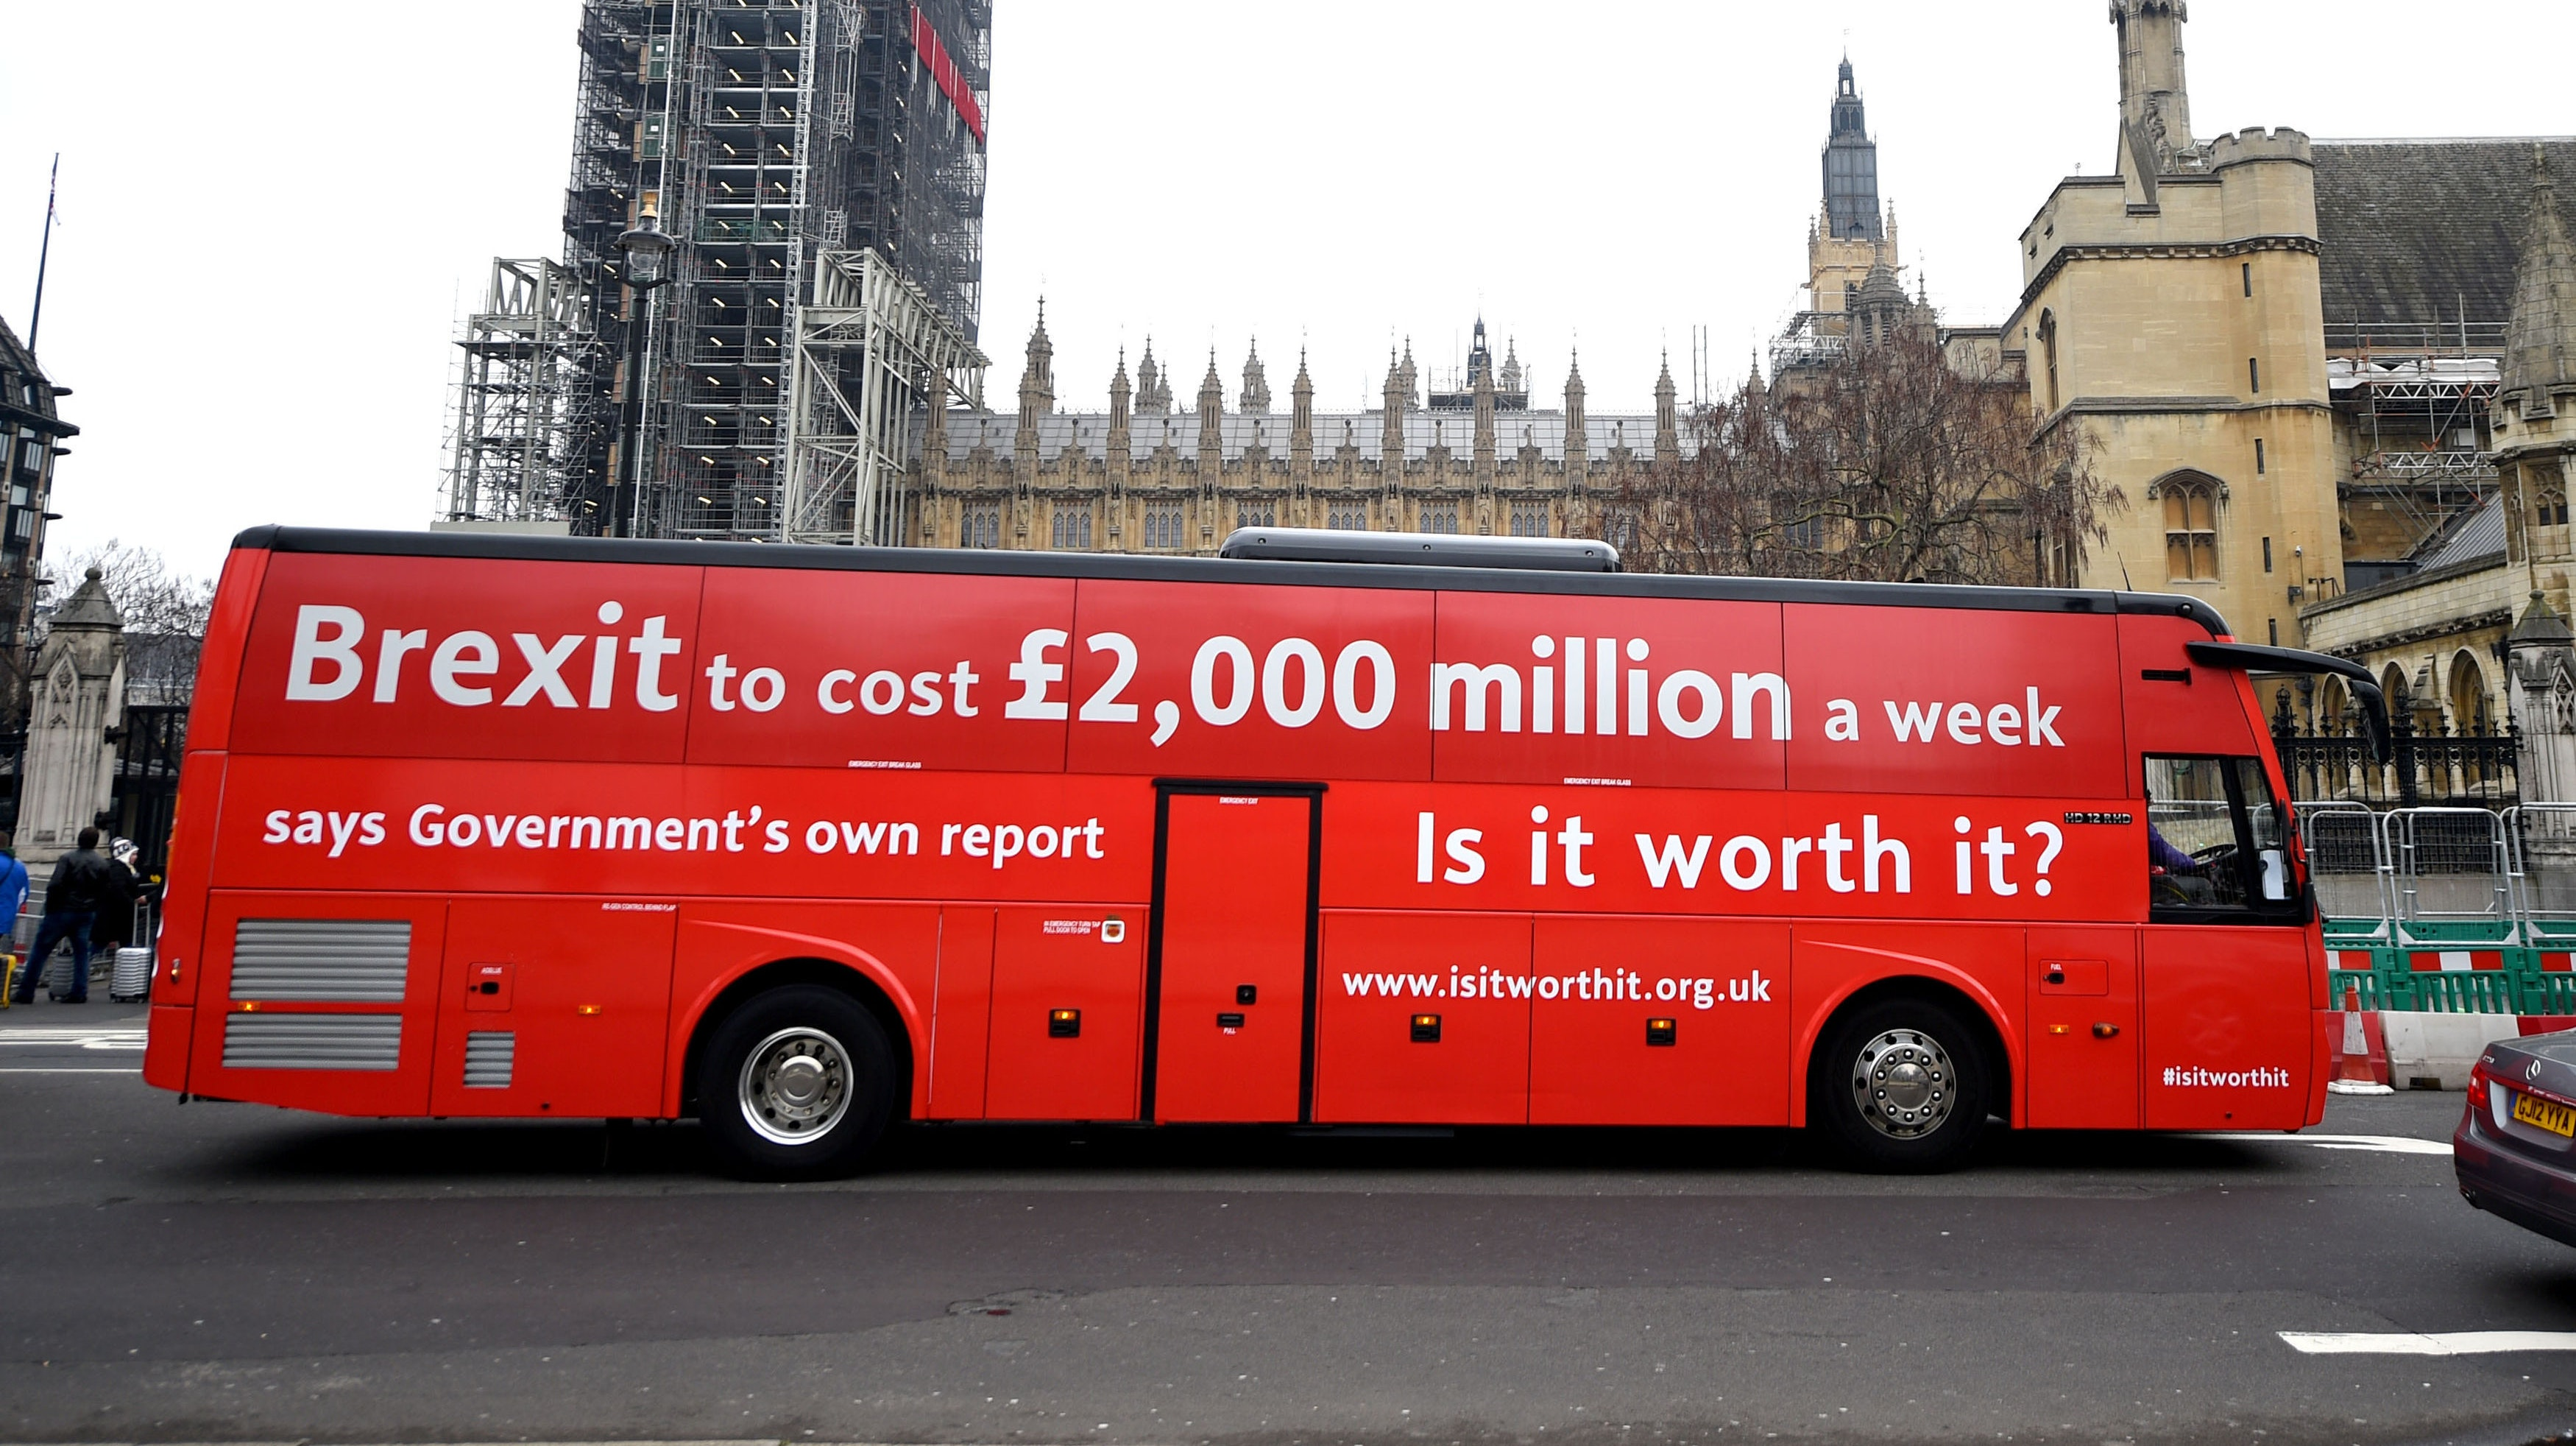 Real Driving Games >> Brexit Bus: Is 2,000 million a real number or should it be 2 billion? | BT